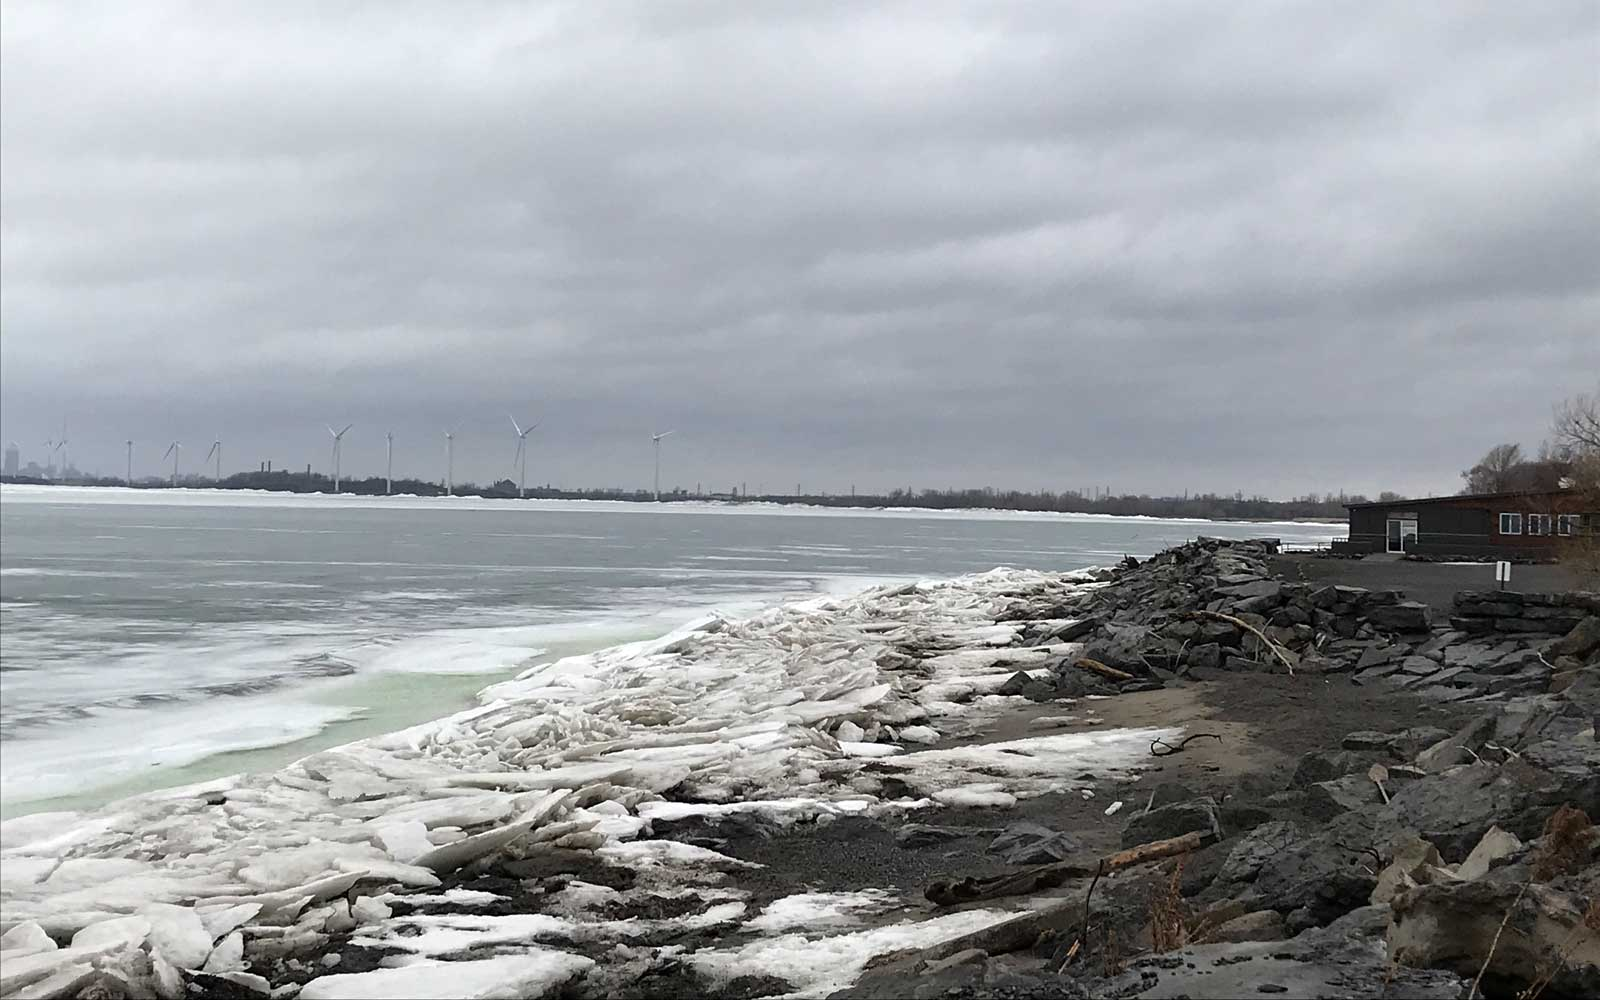 Video captures frozen tsunami along Niagara River